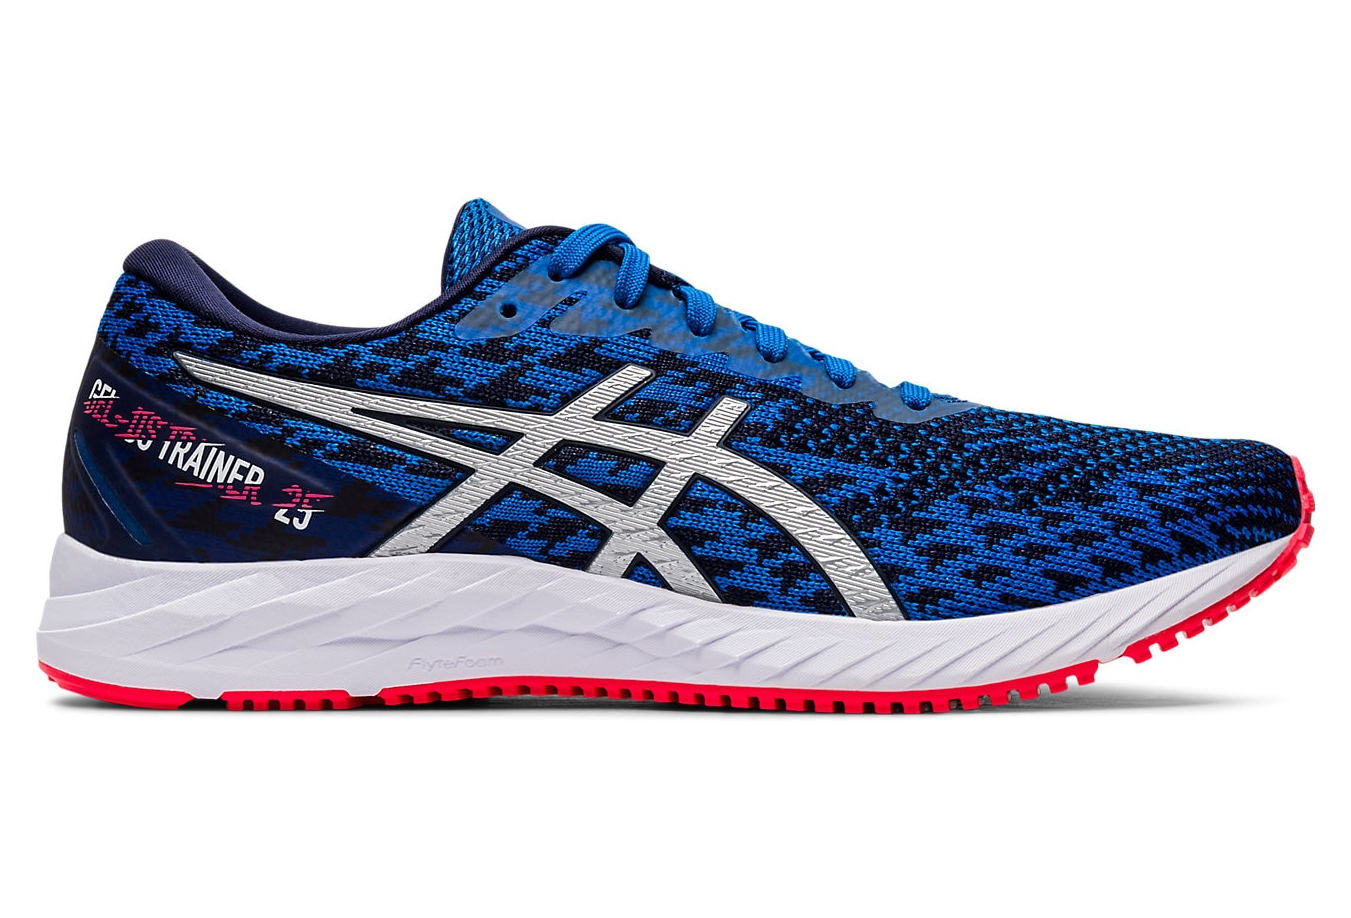 Asics Gel Ds Trainer 20 DONNA Euro 70,00 scarpe